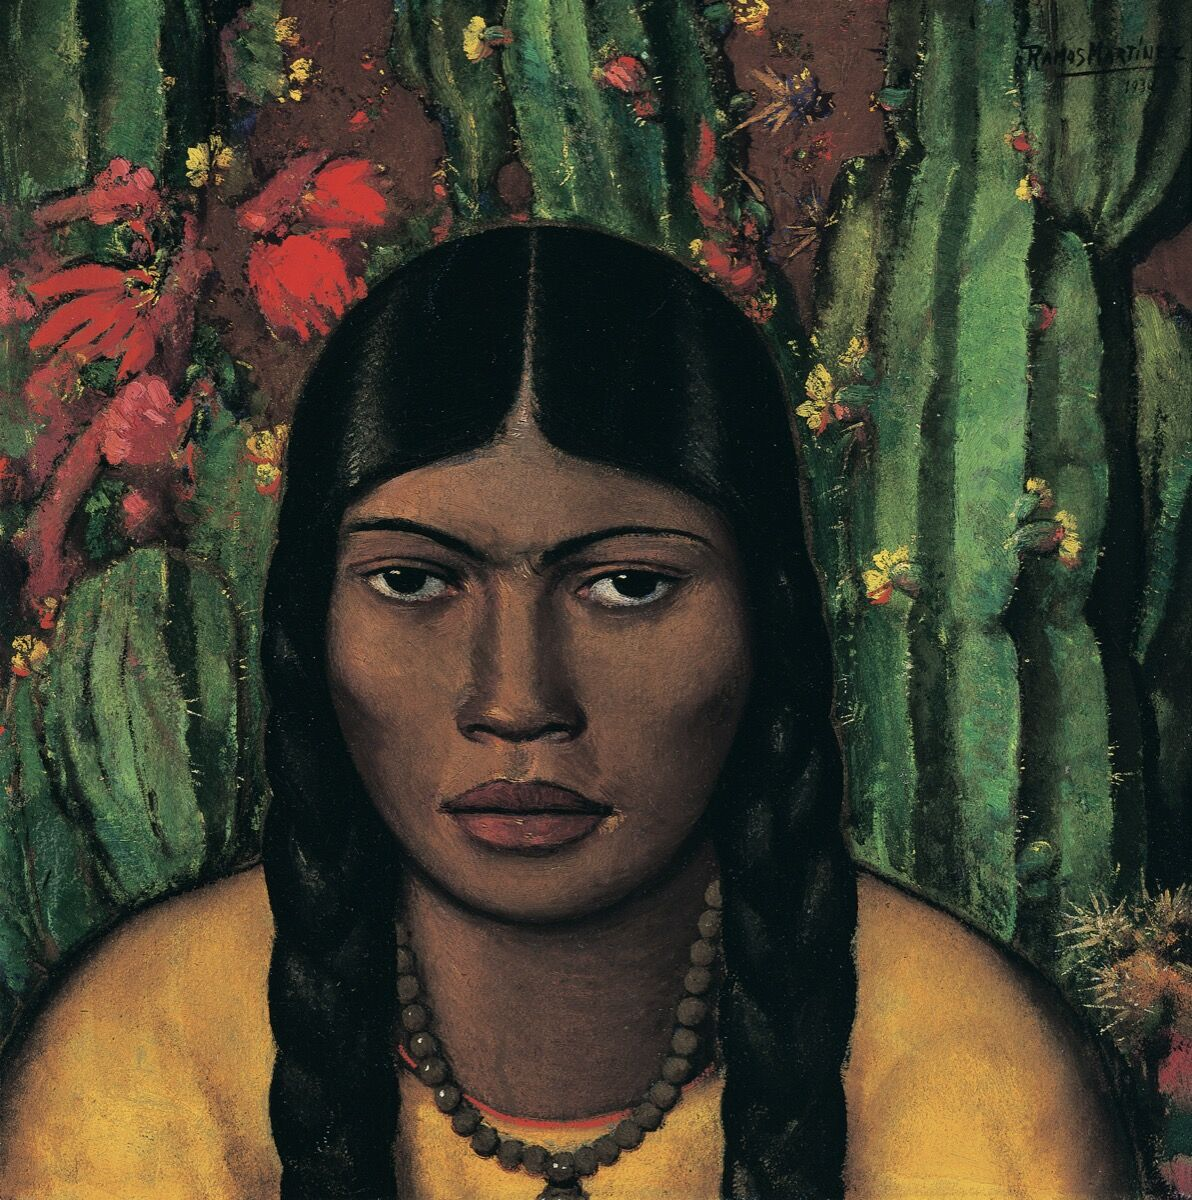 Alfredo Ramos Martínez, Mancacoyota, 1930. © The Alfredo Ramos Martínez Research Project. Courtesy of The Dallas Museum of Art.